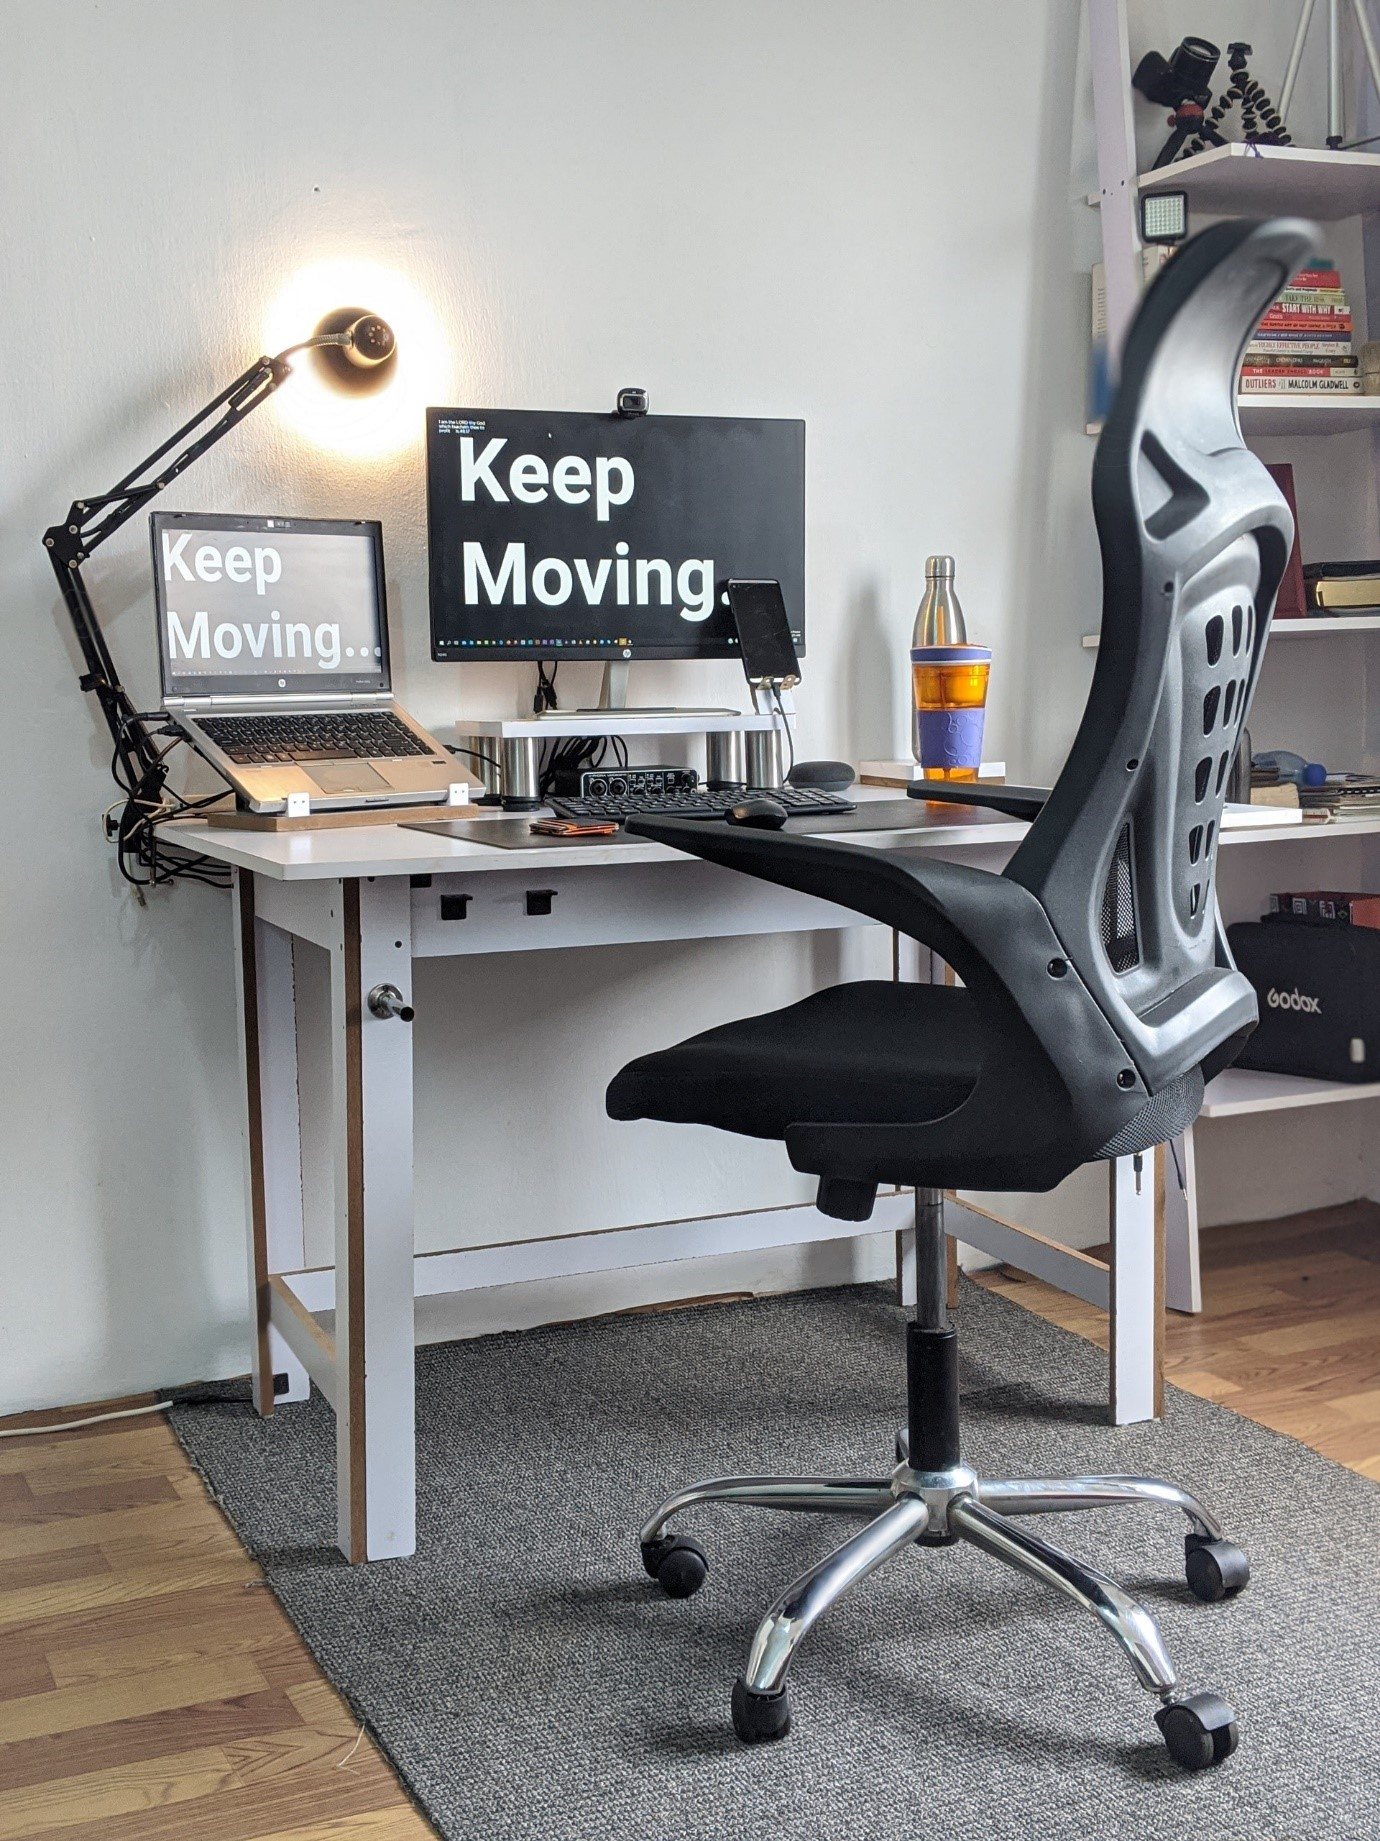 image - Find a Good Working Desk for Your Room Office Place